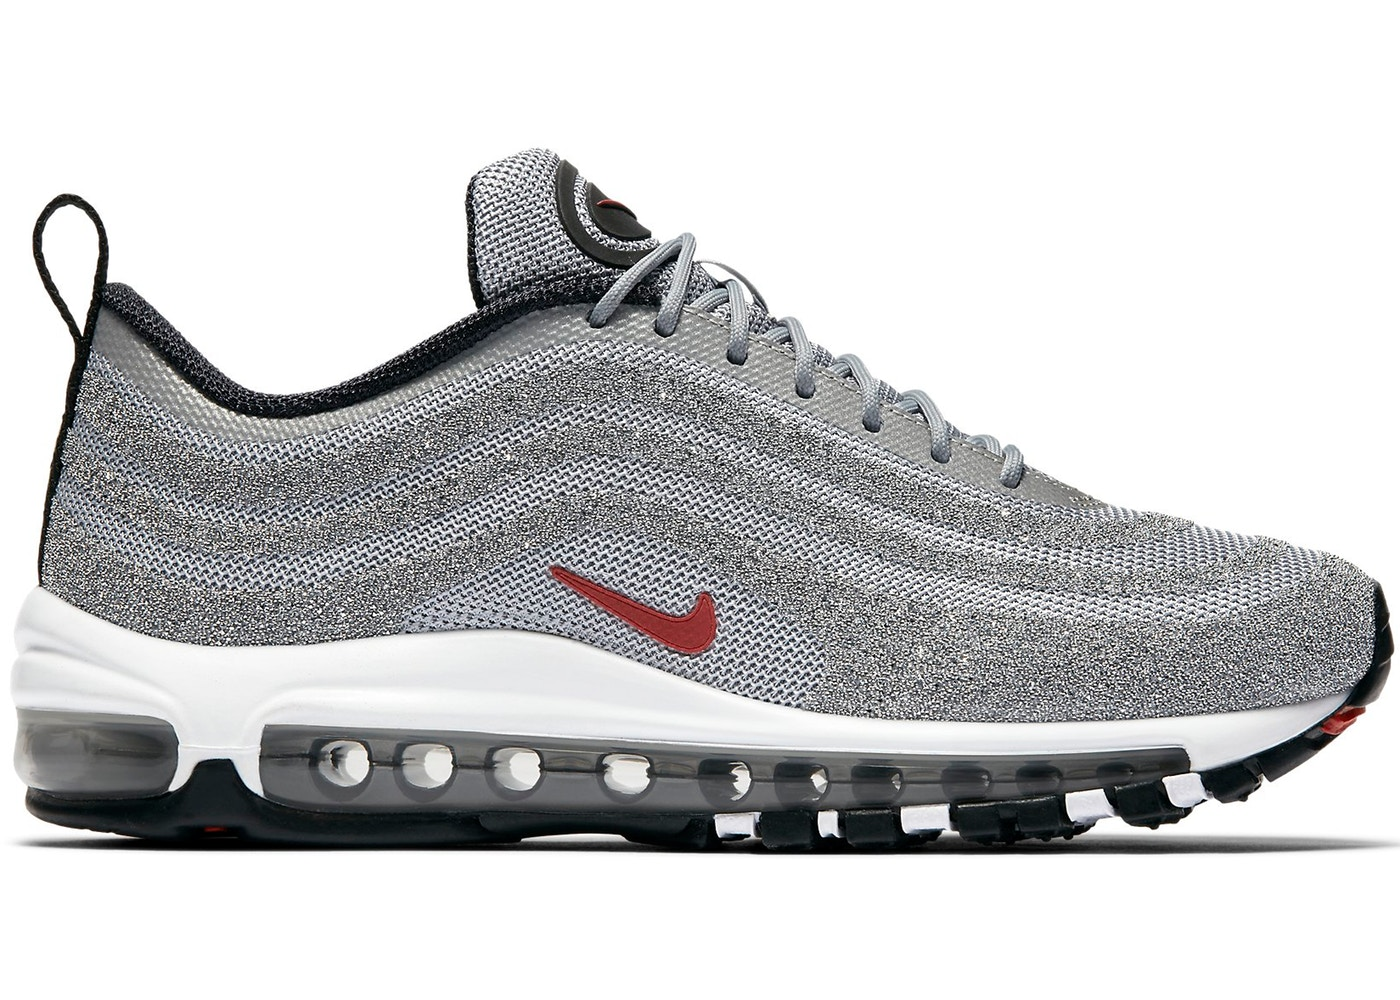 low priced 73635 1b2b4 Air Max 97 LX Swarovski Silver Bullet (W) - 927508-002